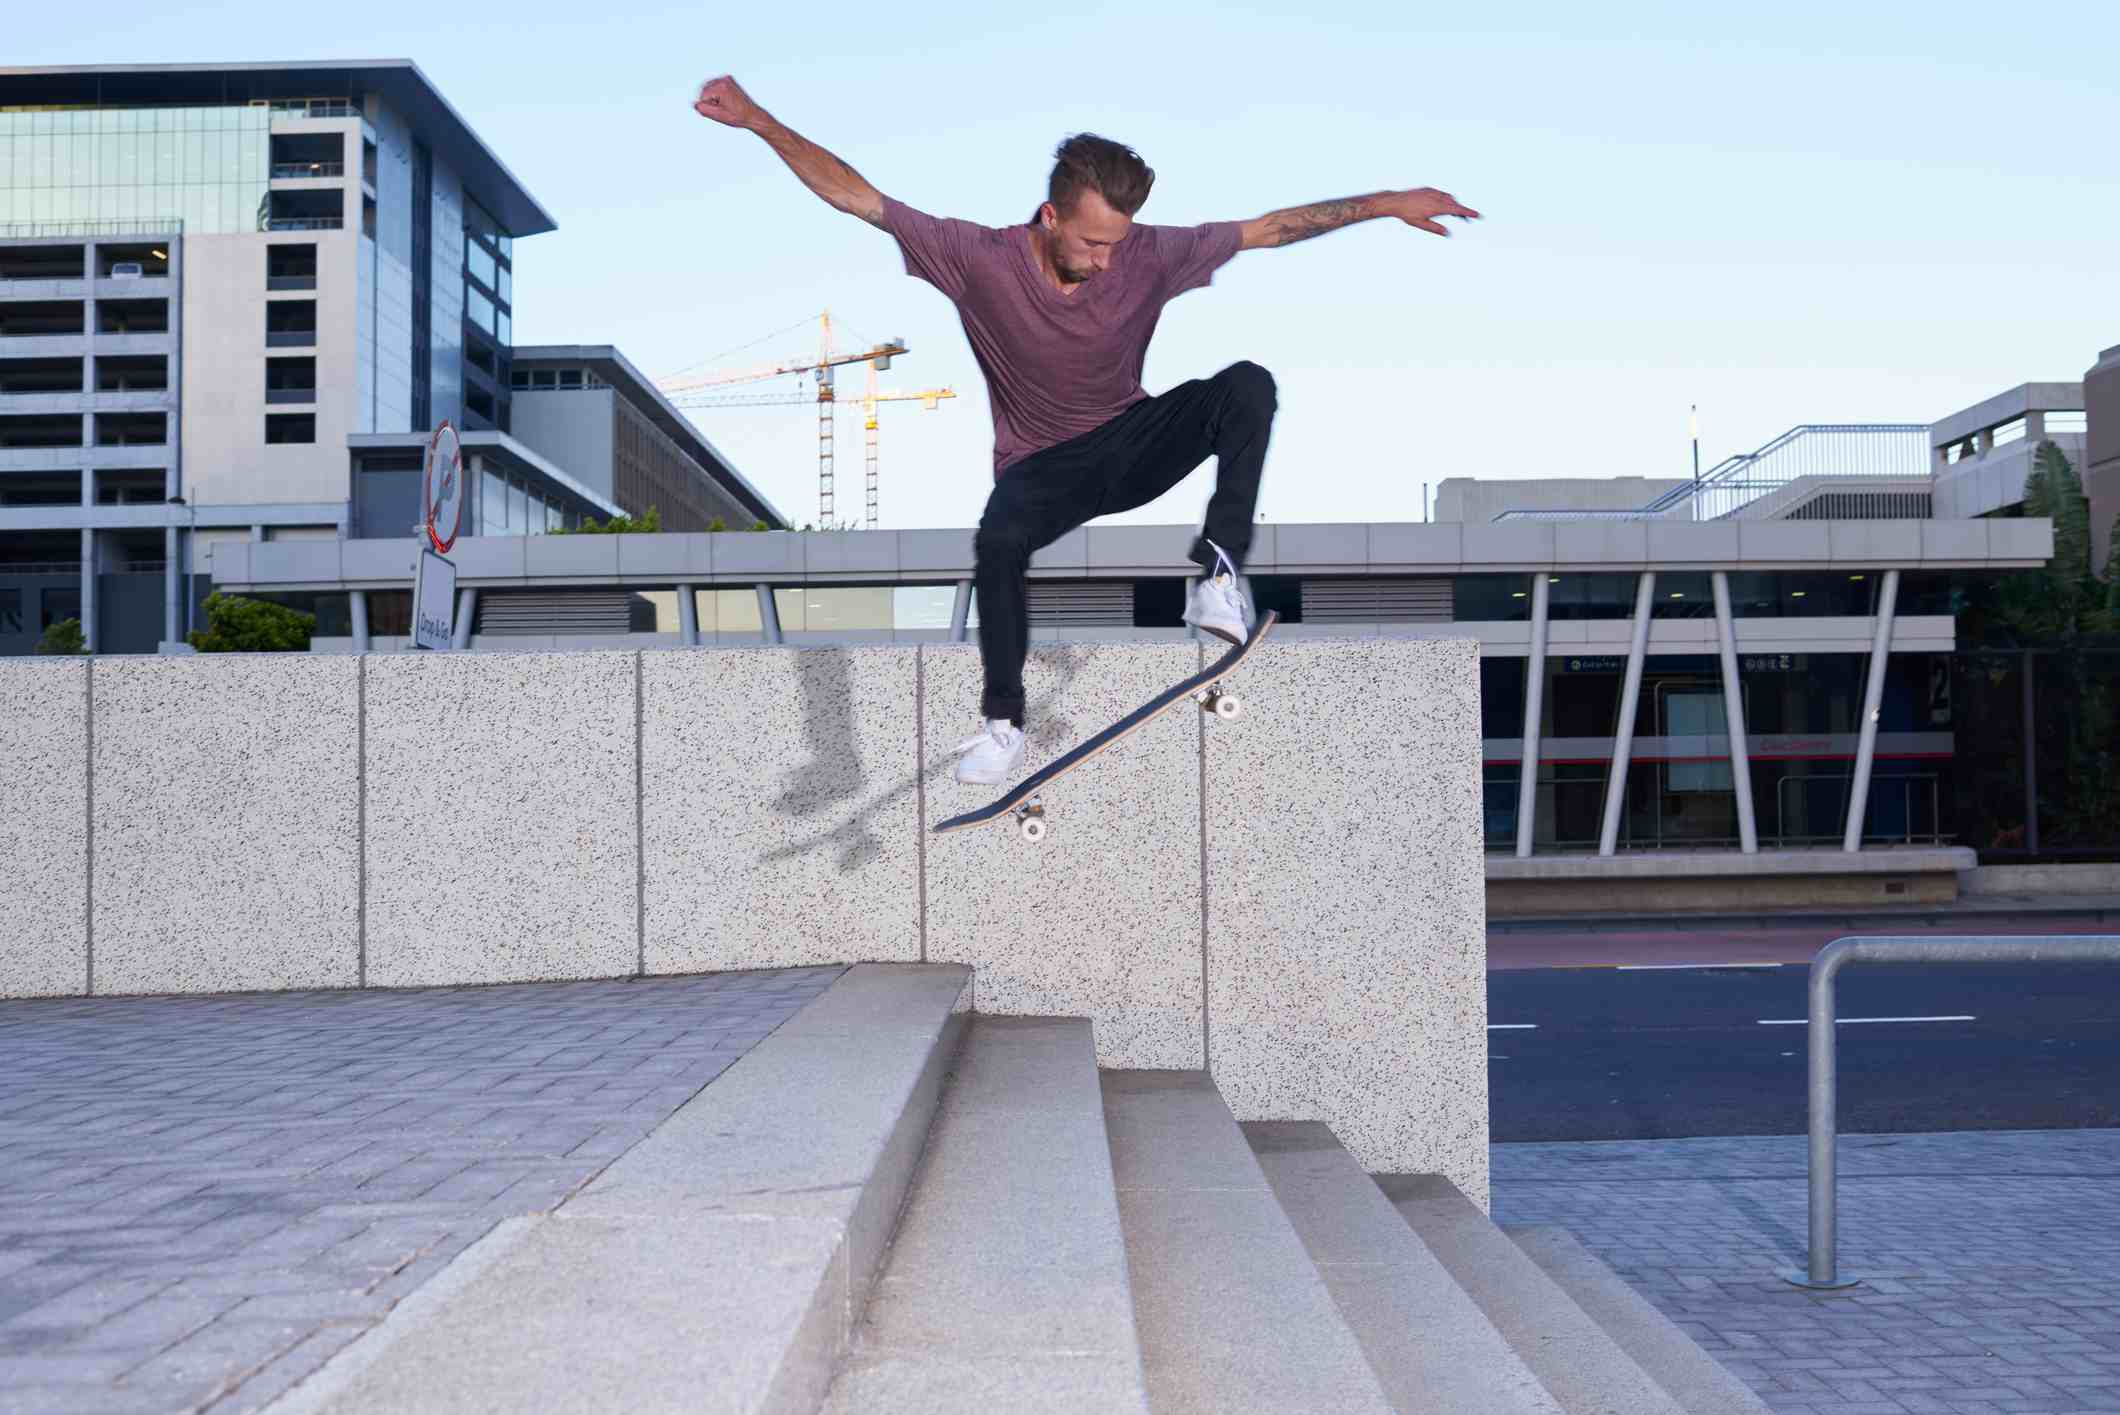 Shot of a young man skating down a flight of stairs